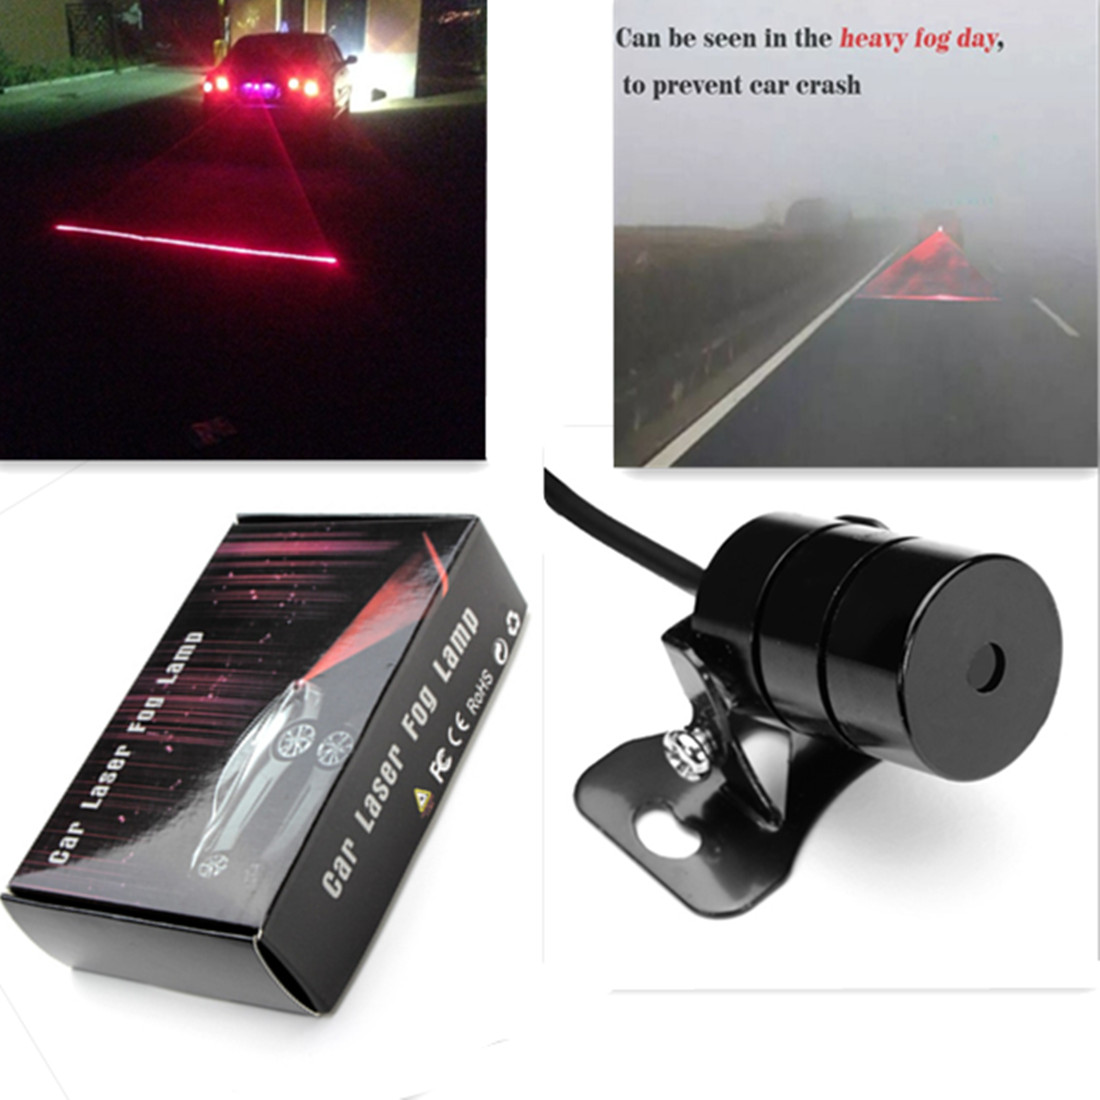 Car Universal Alarm Laser Fog Light Rear Anti-Collision Taillight Warning Lamp for chevy chevrolet lacetti matiz automotive anti rear fog light vehicle collision warning safety laser fog lights